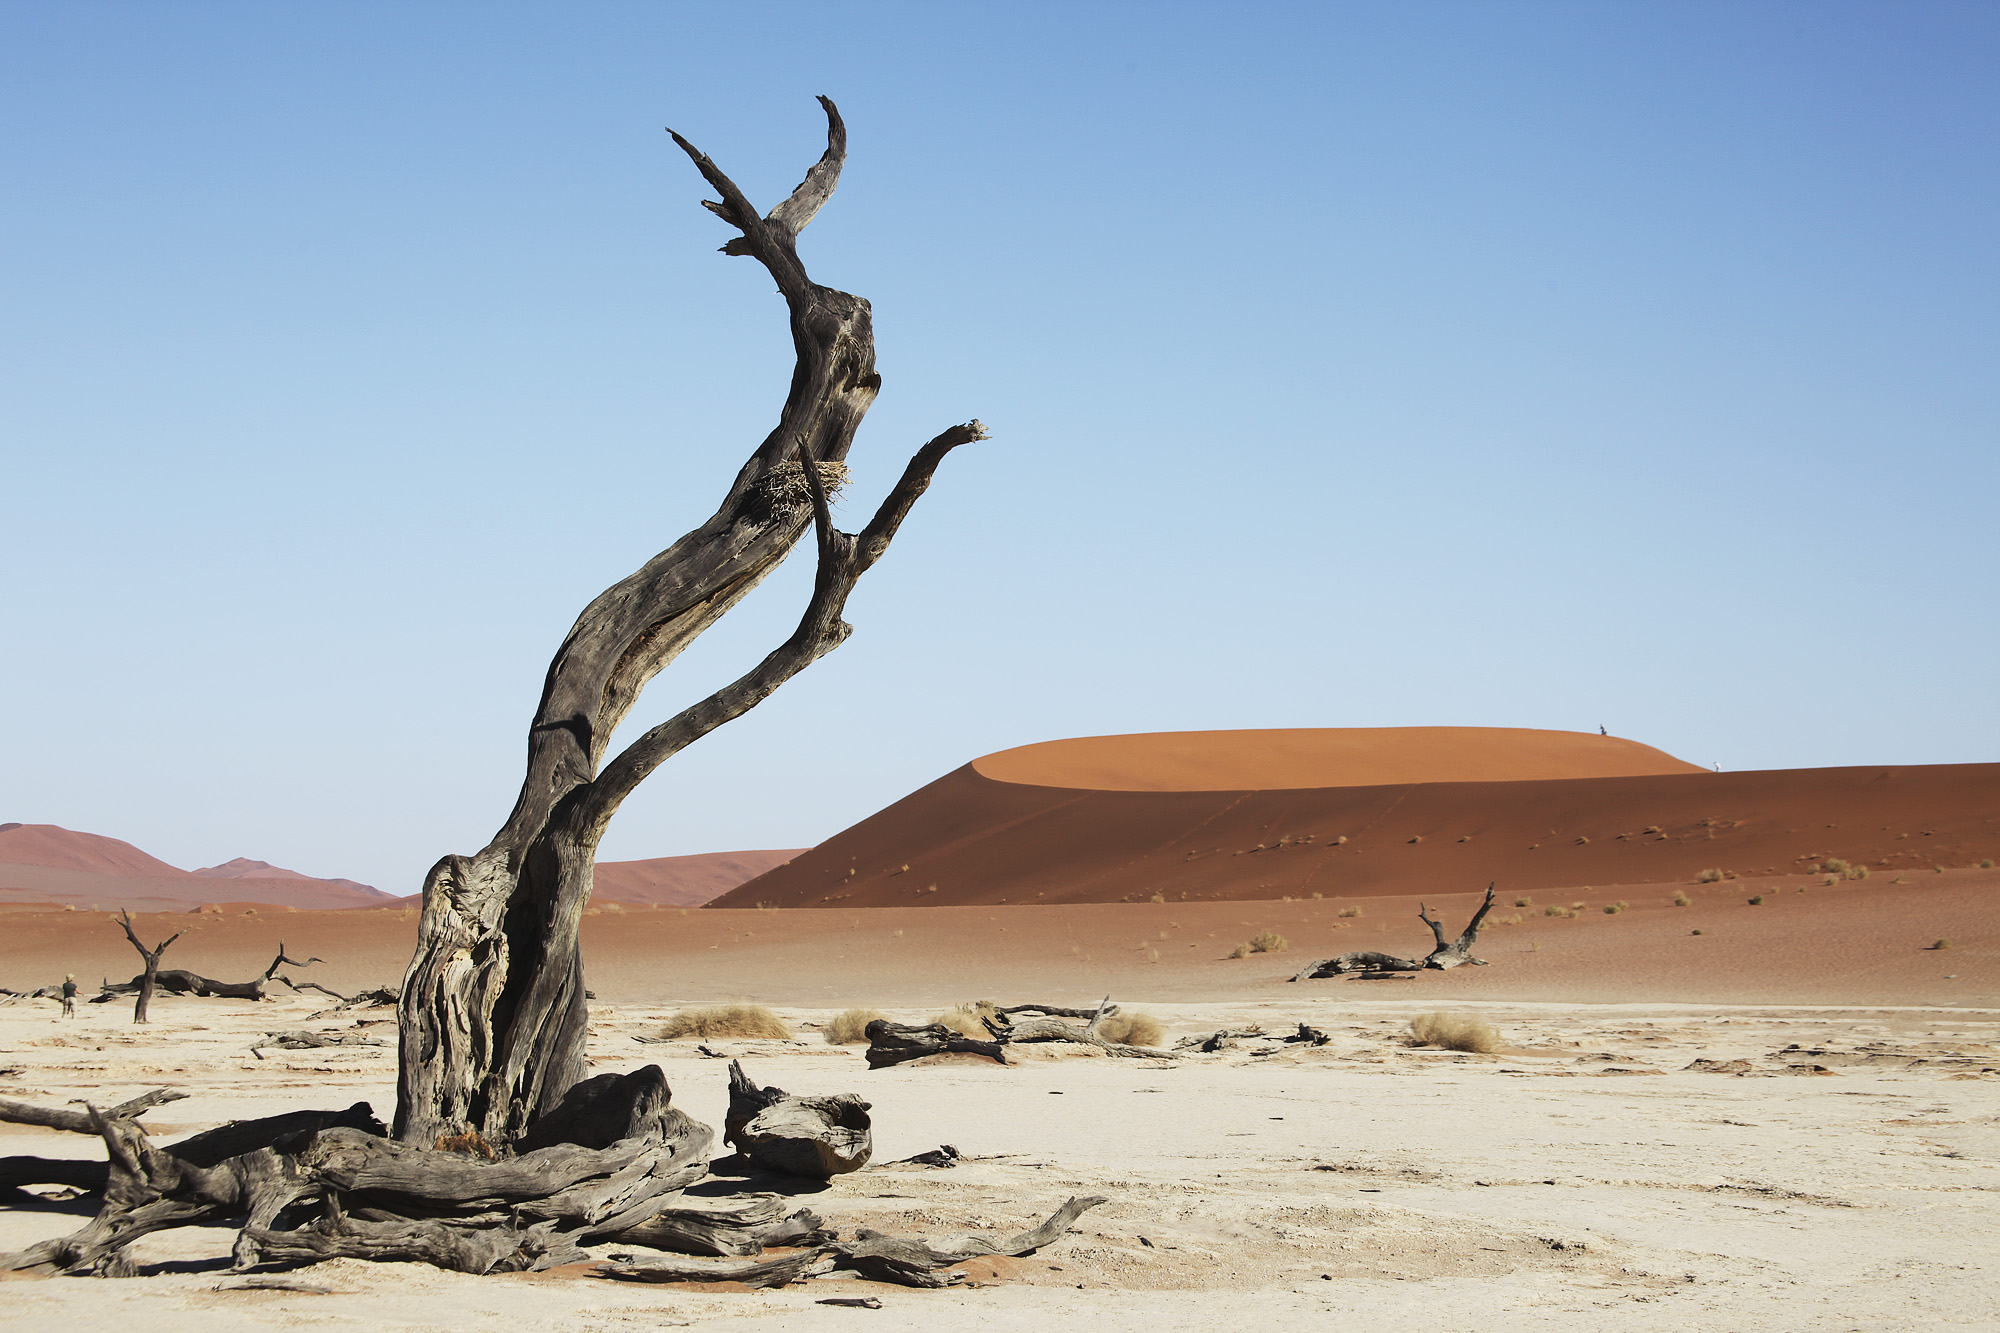 At the base of Big Daddy standing in Dead Vlei